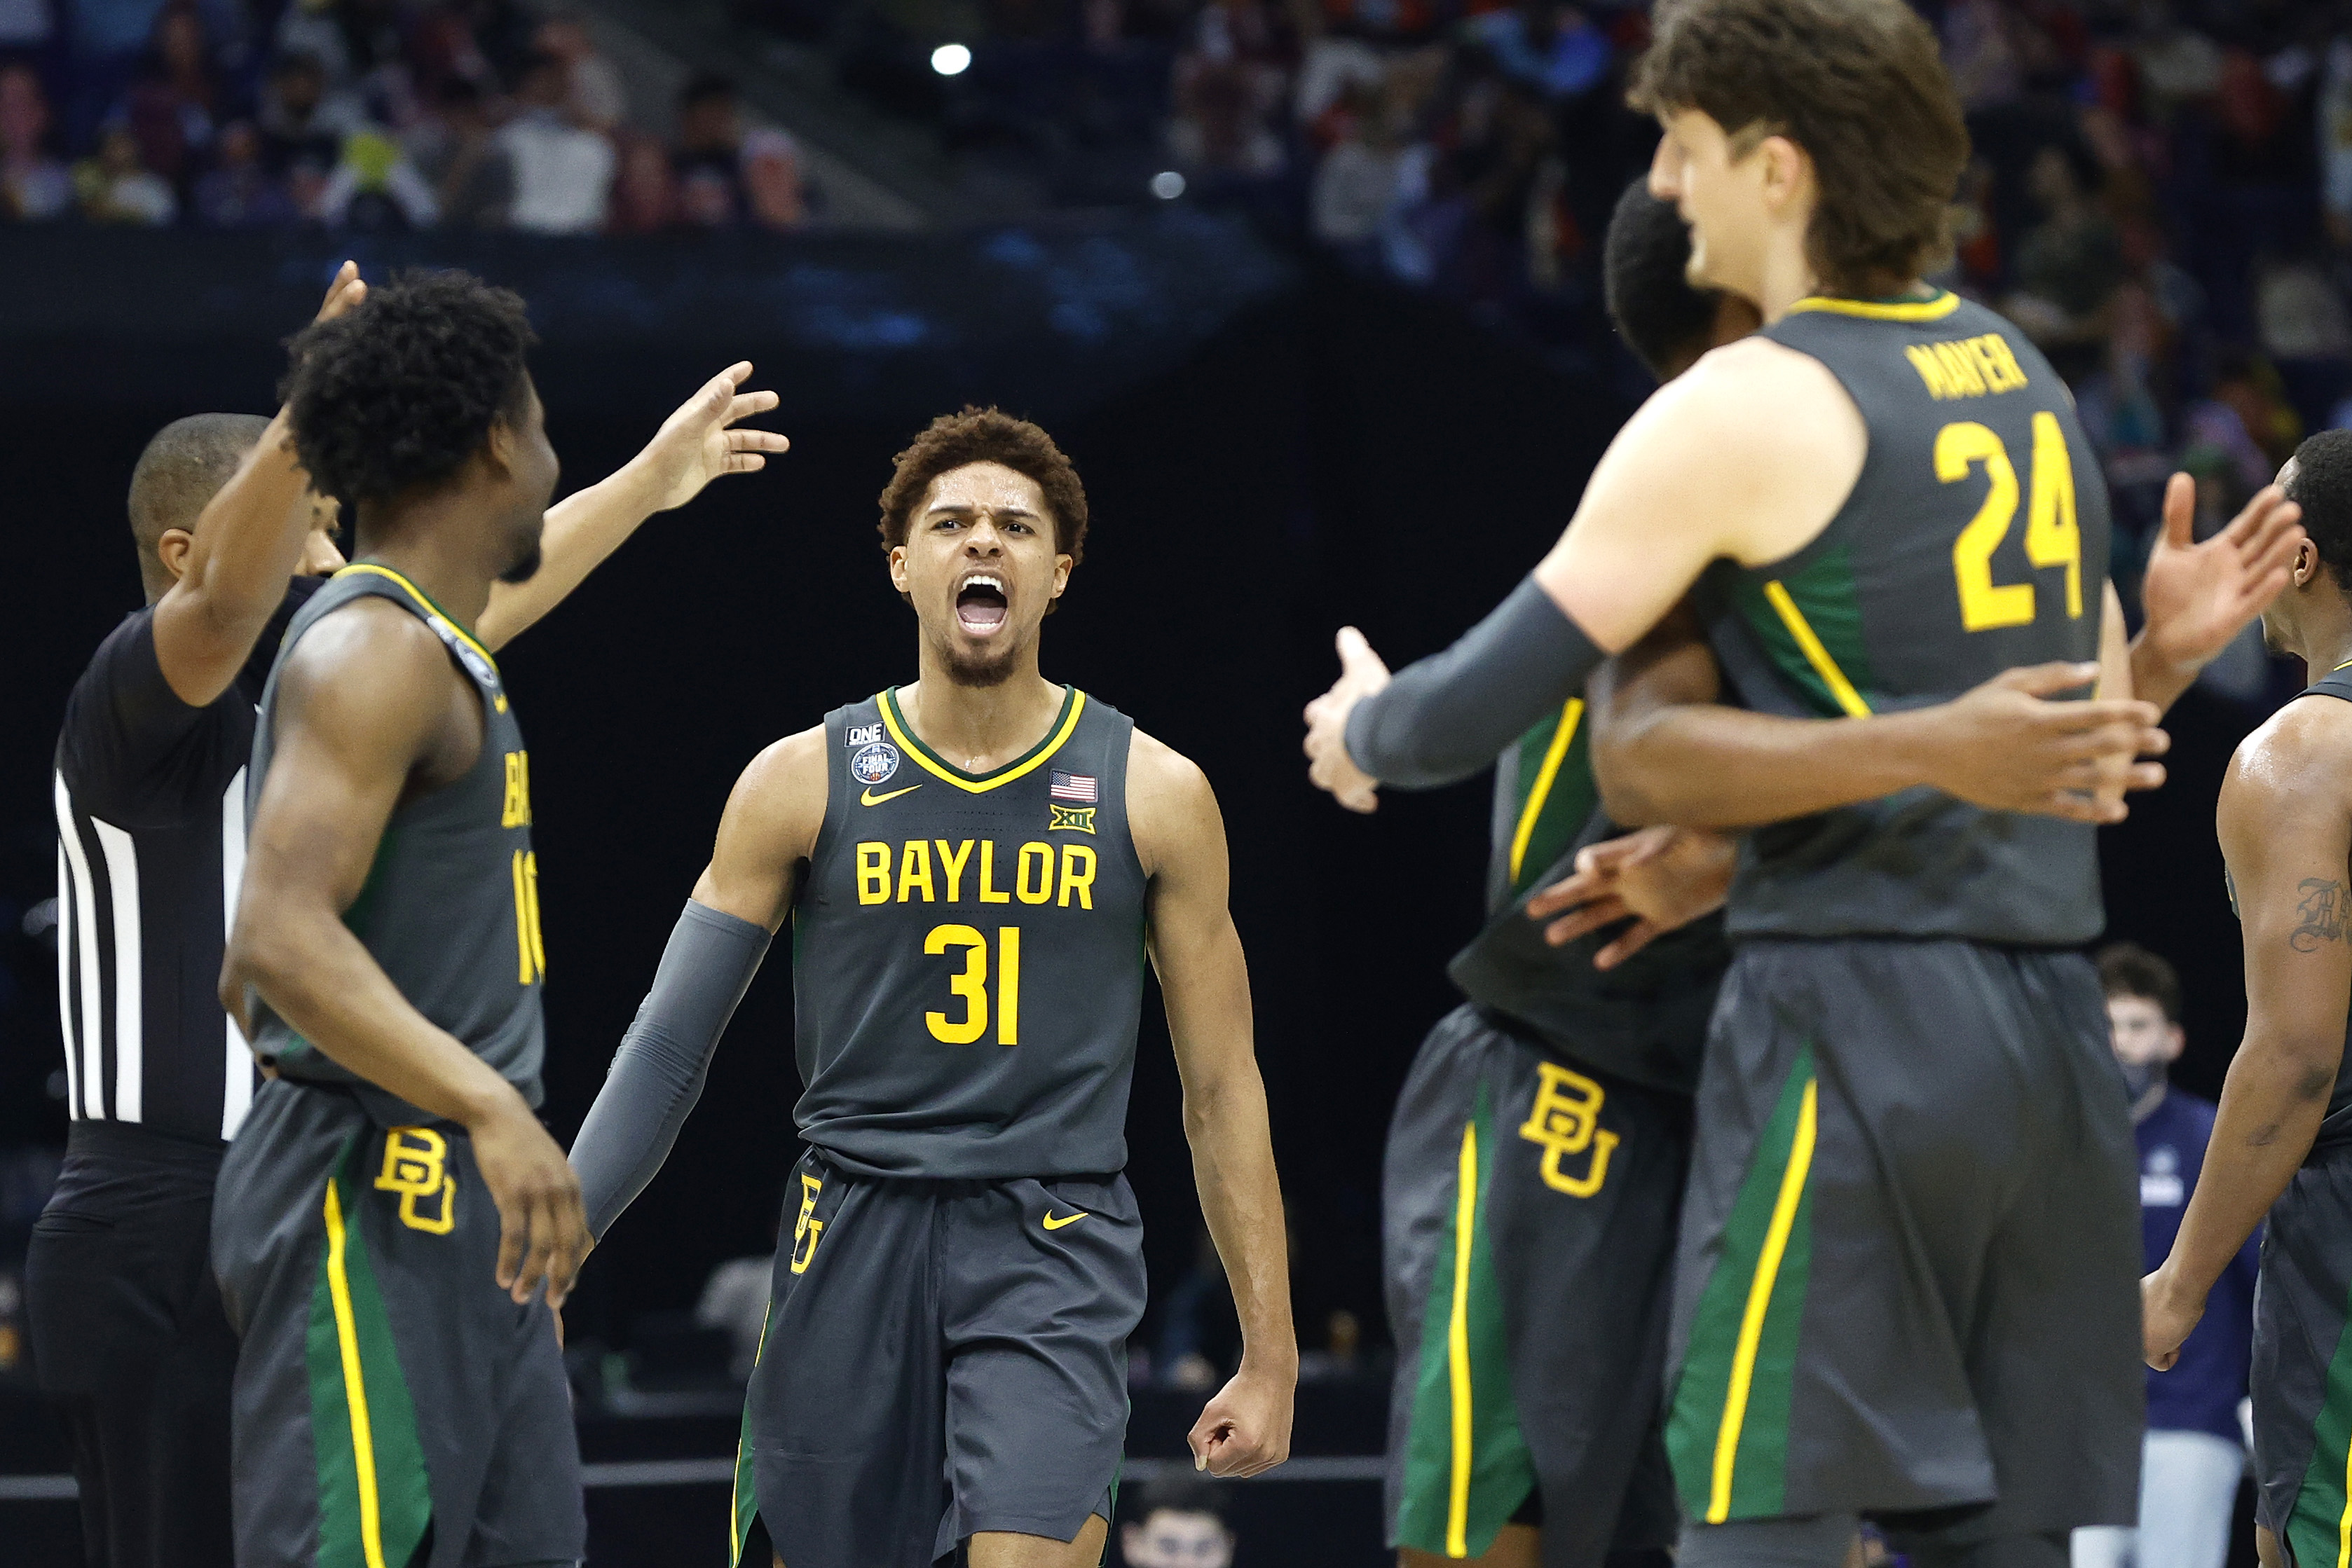 MaCio Teague of the Baylor Bears reacts in the second half of the National Championship game of the 2021 NCAA Men's Basketball Tournament against the Gonzaga Bulldogs at Lucas Oil Stadium on April 05, 2021 in Indianapolis, Indiana.